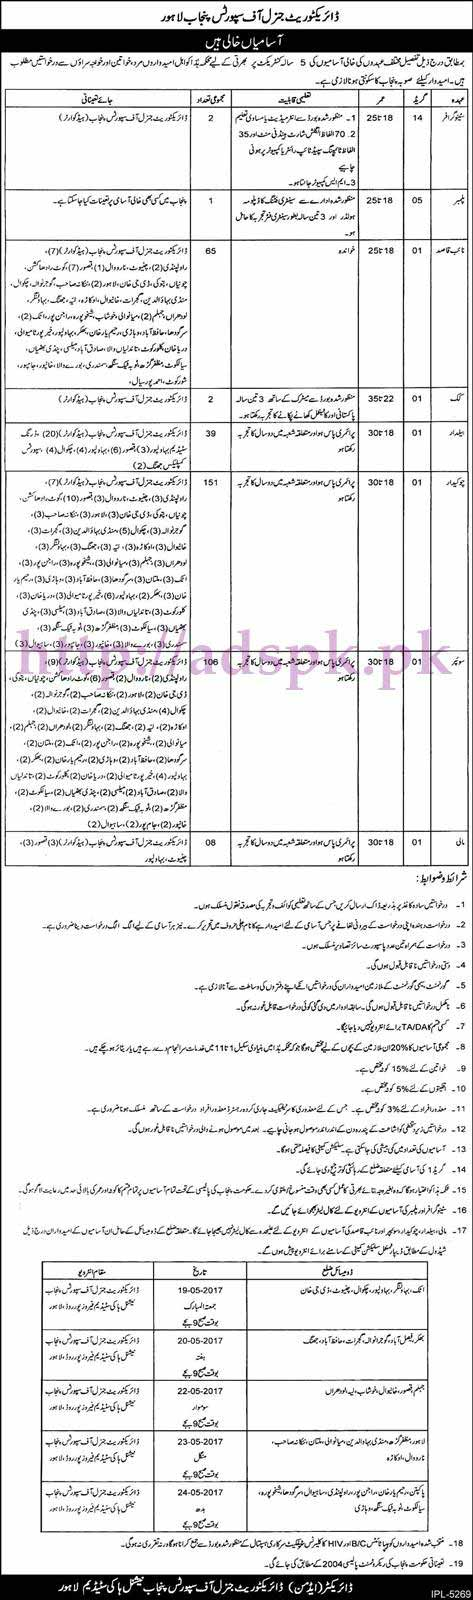 New Jobs Directorate General of Sports Govt. of Punjab Lahore Jobs 2017 for Stenographer Naib Qasid Cook Beldar Plumber Chowkidar Jobs Application Deadline 18-05-2017 Interview Schedule Apply Now